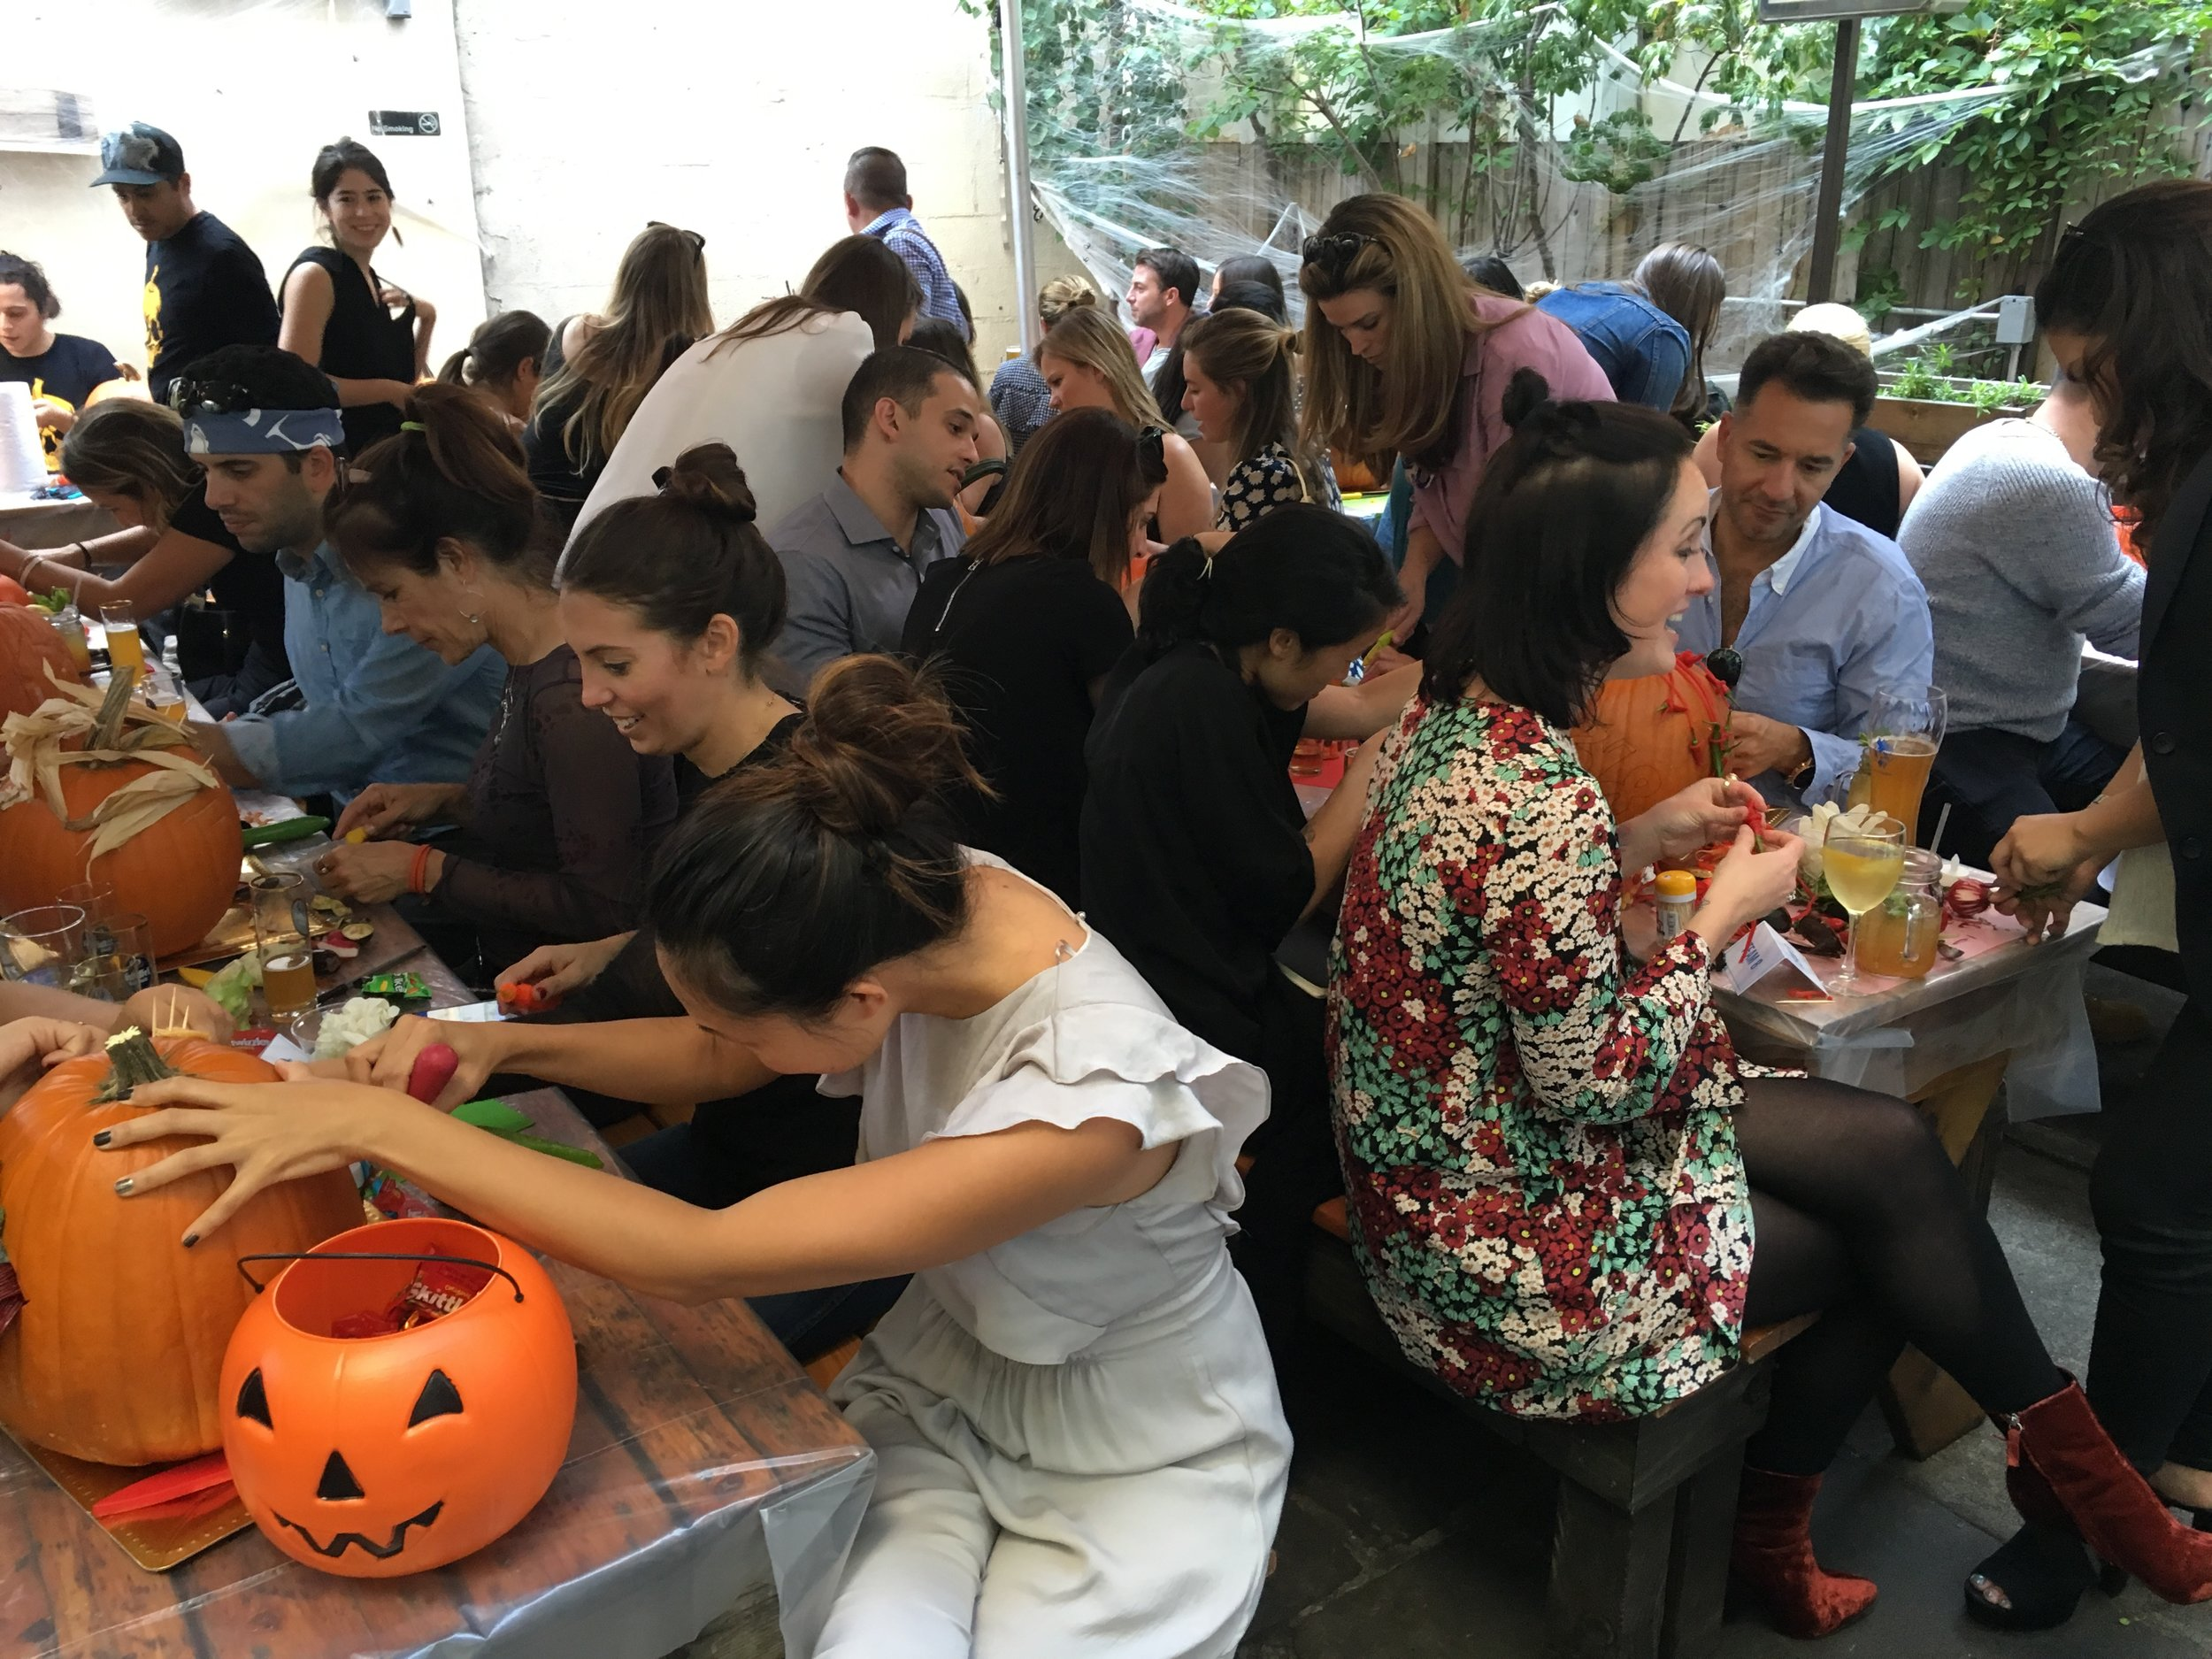 Corporate team building activities are a blast when Maniac Pumpkins are involved!  With years of art teaching experience across a variety of mediums, our artists will help you to improve your pumpkin carvings and unlock your inner creativity. Classes and activities can be adapted for artists at any skill level, from beginner to professional.